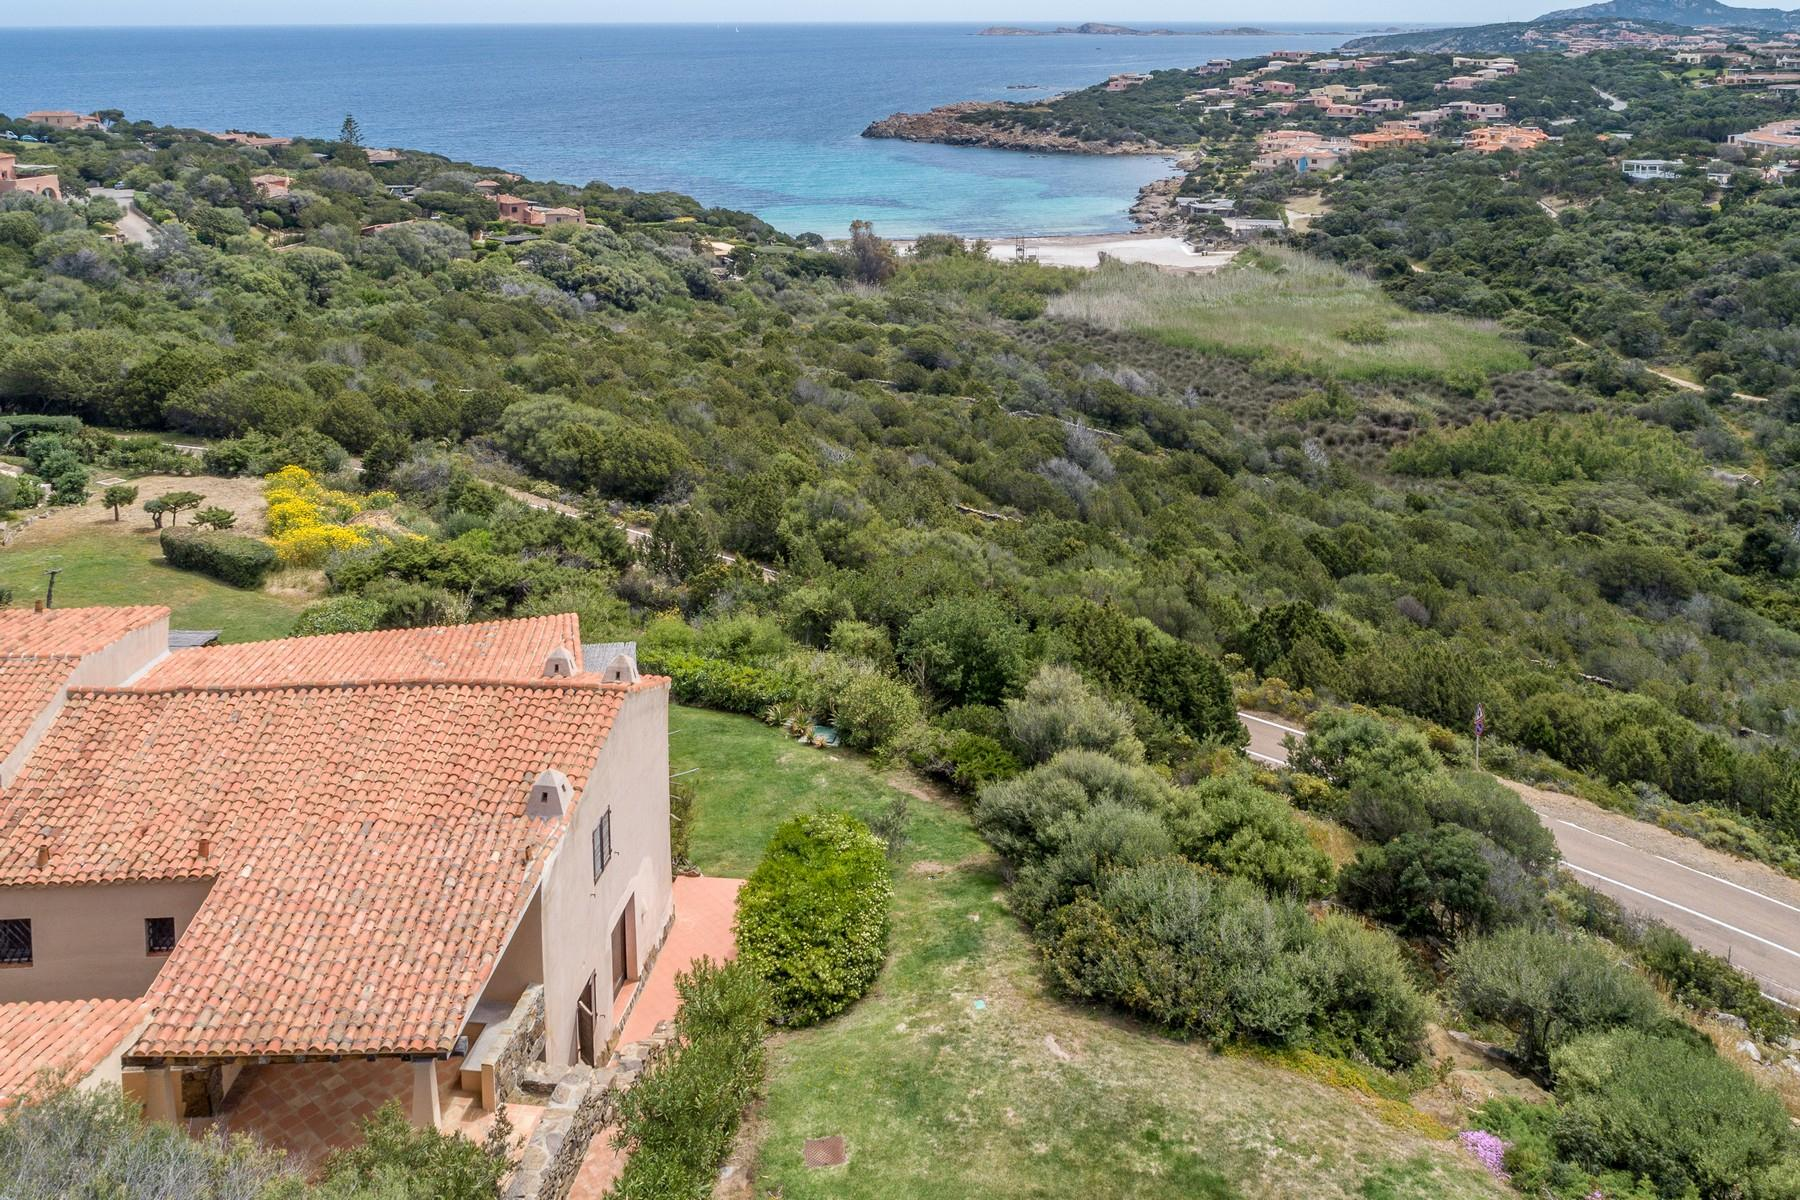 Porto Cervo Cala Granu Delightful Apartment a few steps from the beach - 21